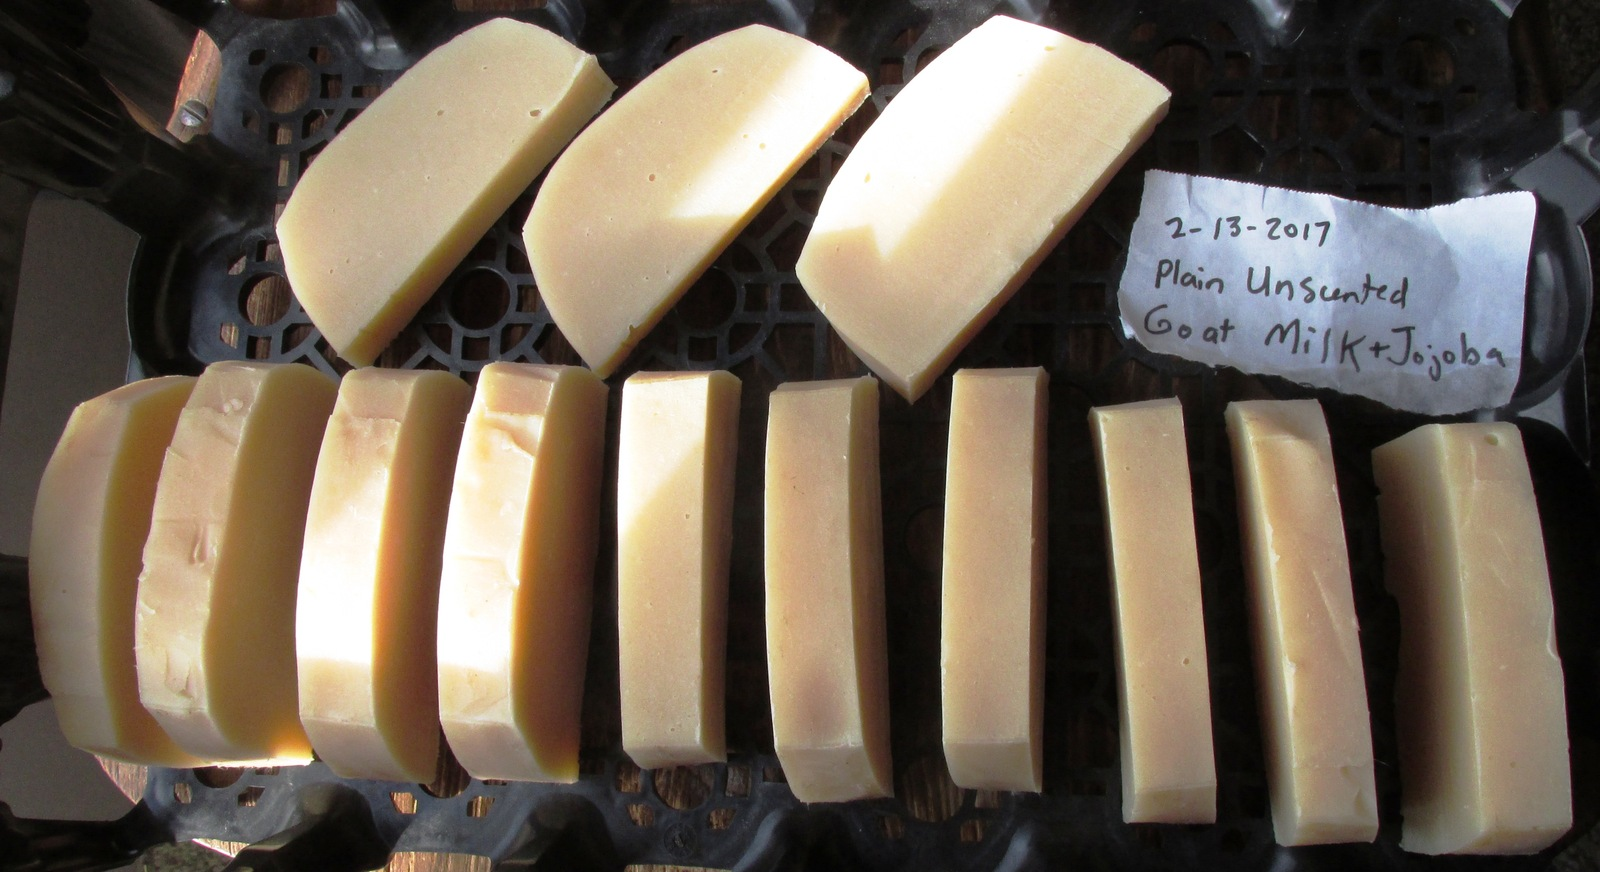 Plain Unscented Goat Milk Soap with CoconutOil OliveOil PalmOil JojobaOil